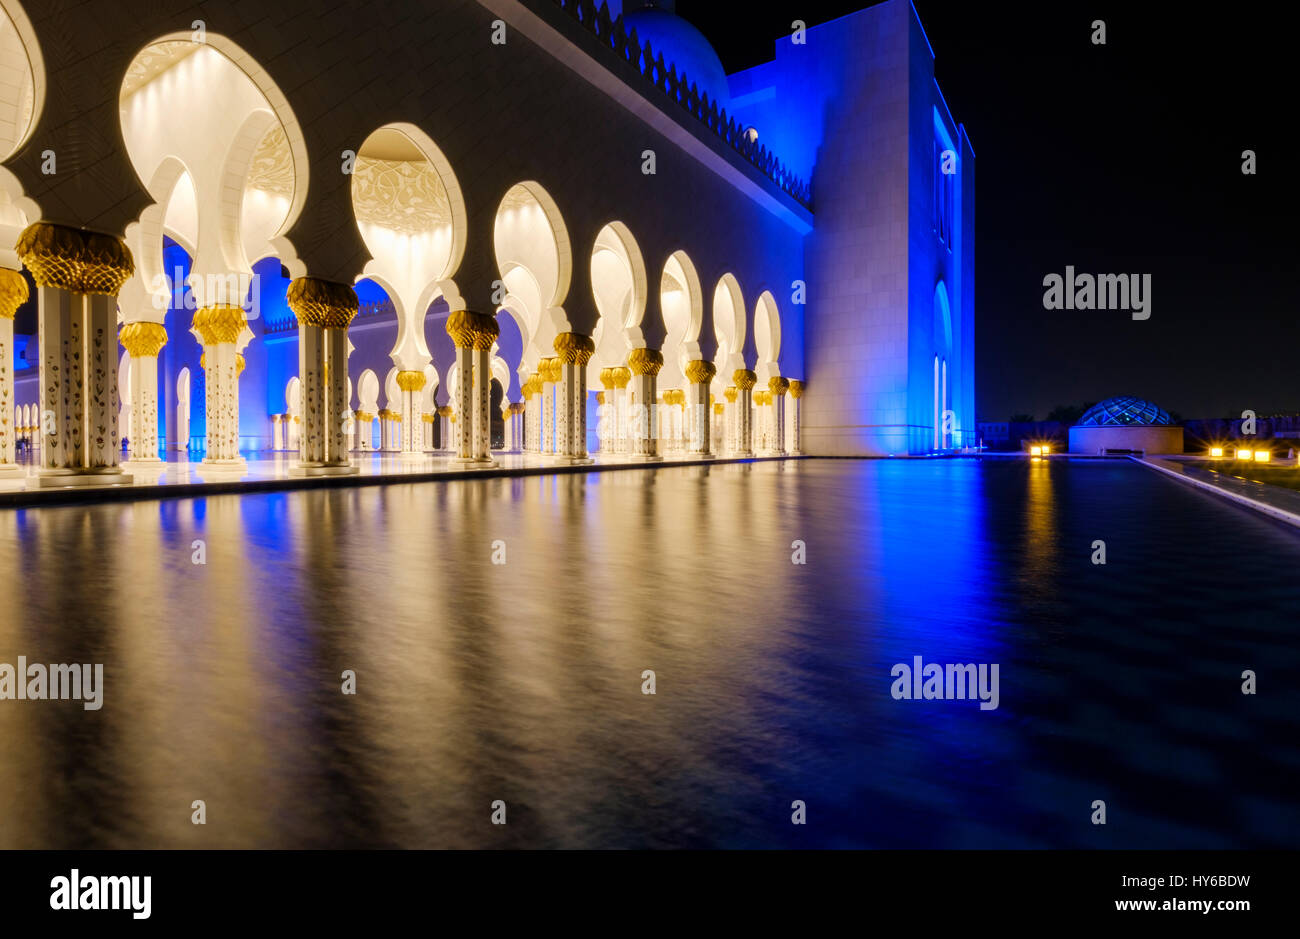 UNITED ARAB EMIRATES, ABU DHABI - CIRCA JANUARY 2017:  Pool, arches and columns of the Sheikh Zayed Mosque at night. - Stock Image